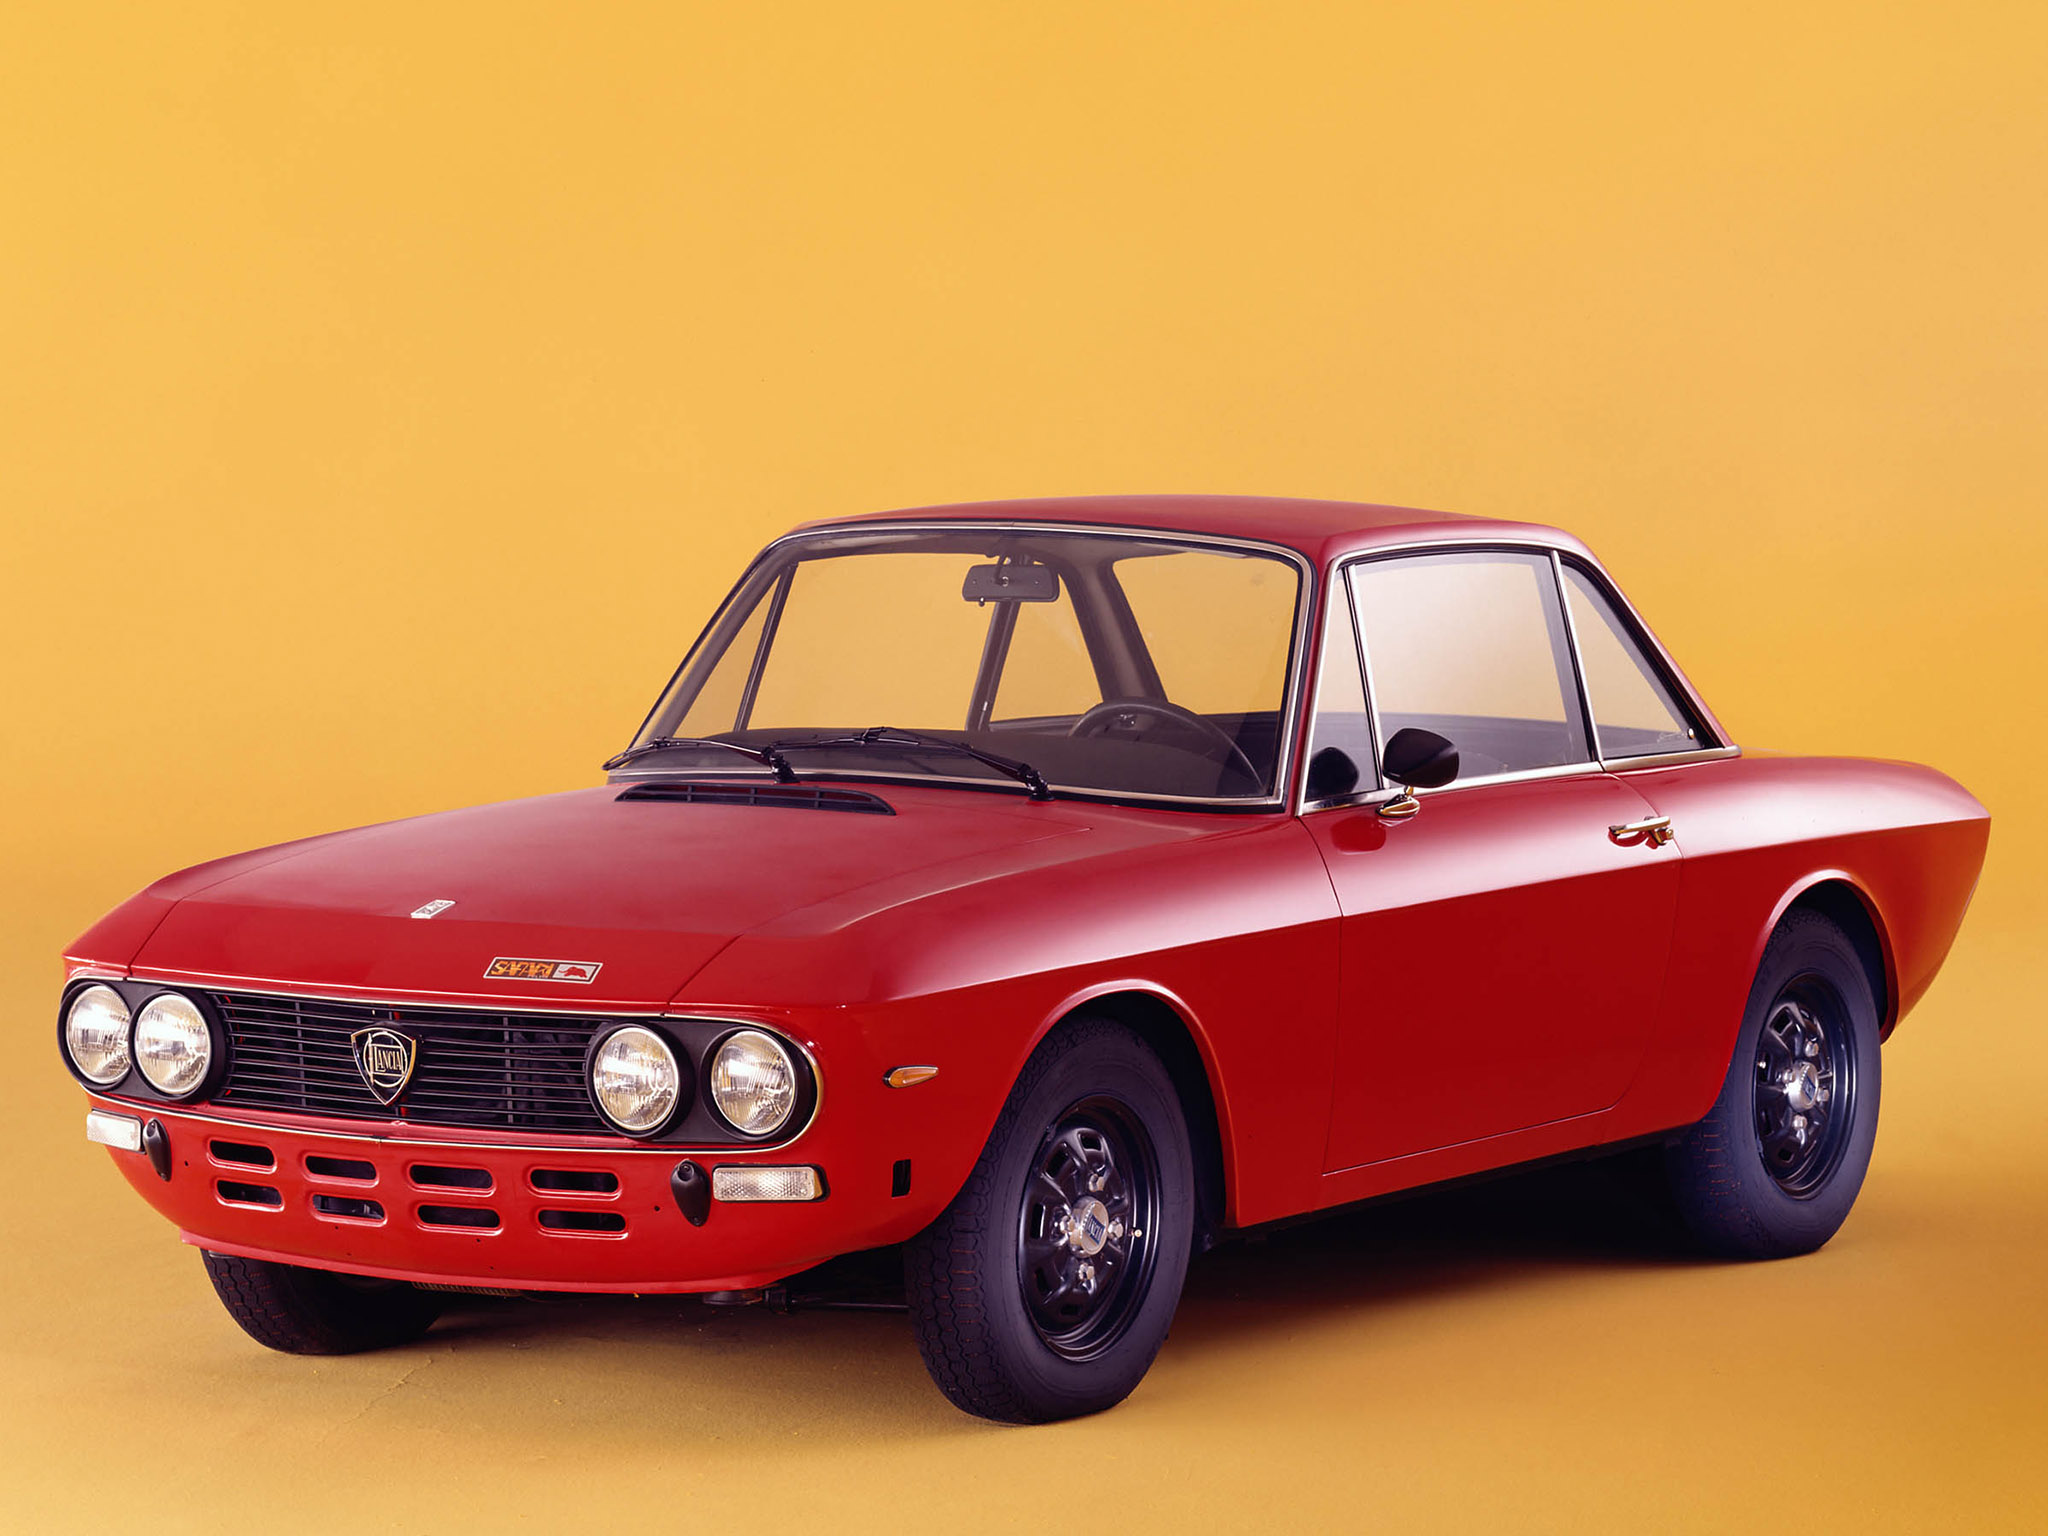 http://www.carsaddiction.com/files/cars/67__Fulvia_Coupe_Rally_1.3HF.jpg